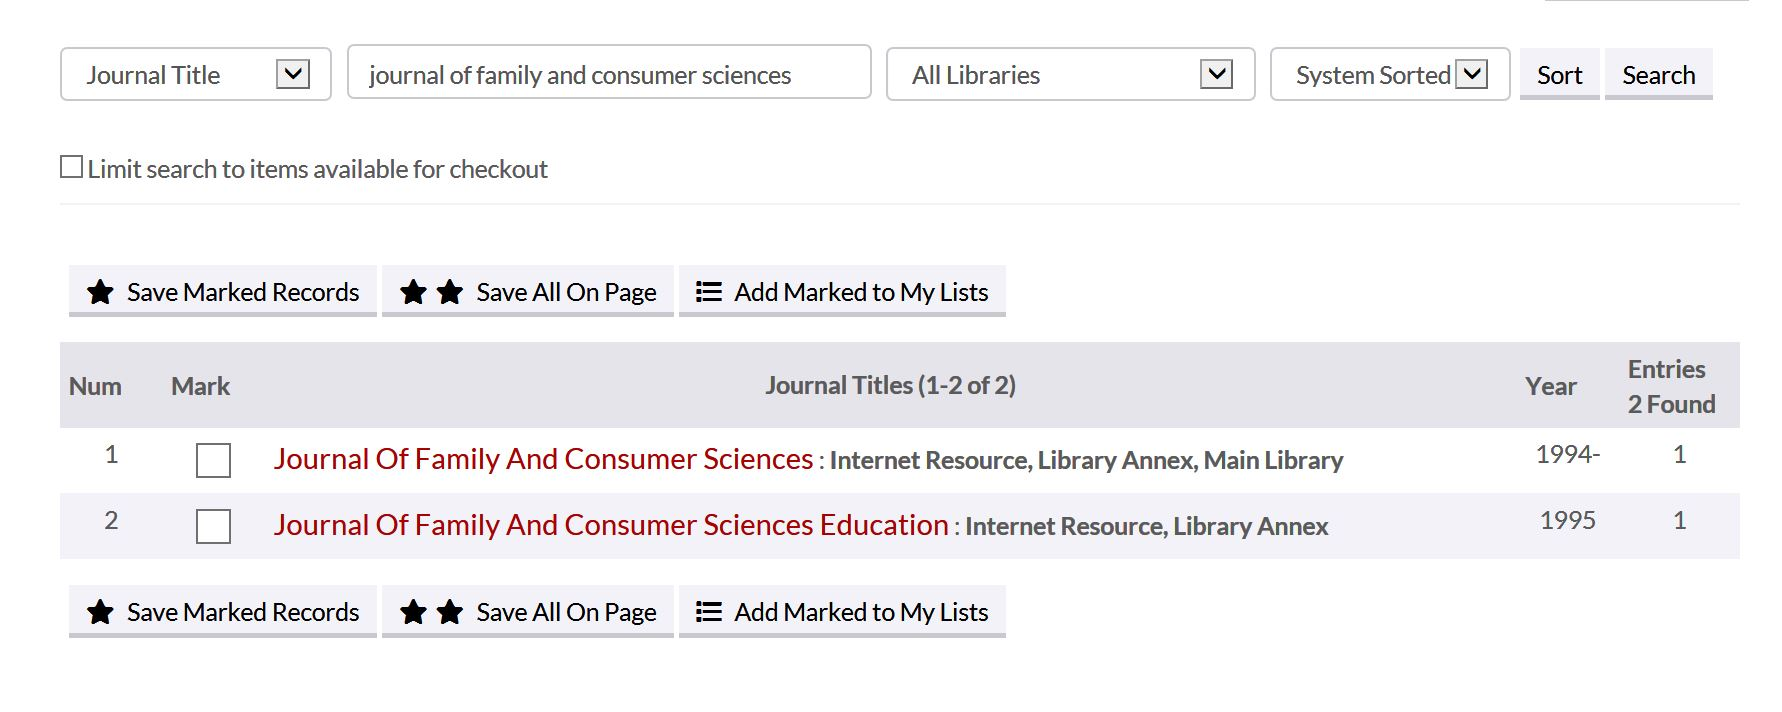 showing the two journals with similar titles in the catalog listing